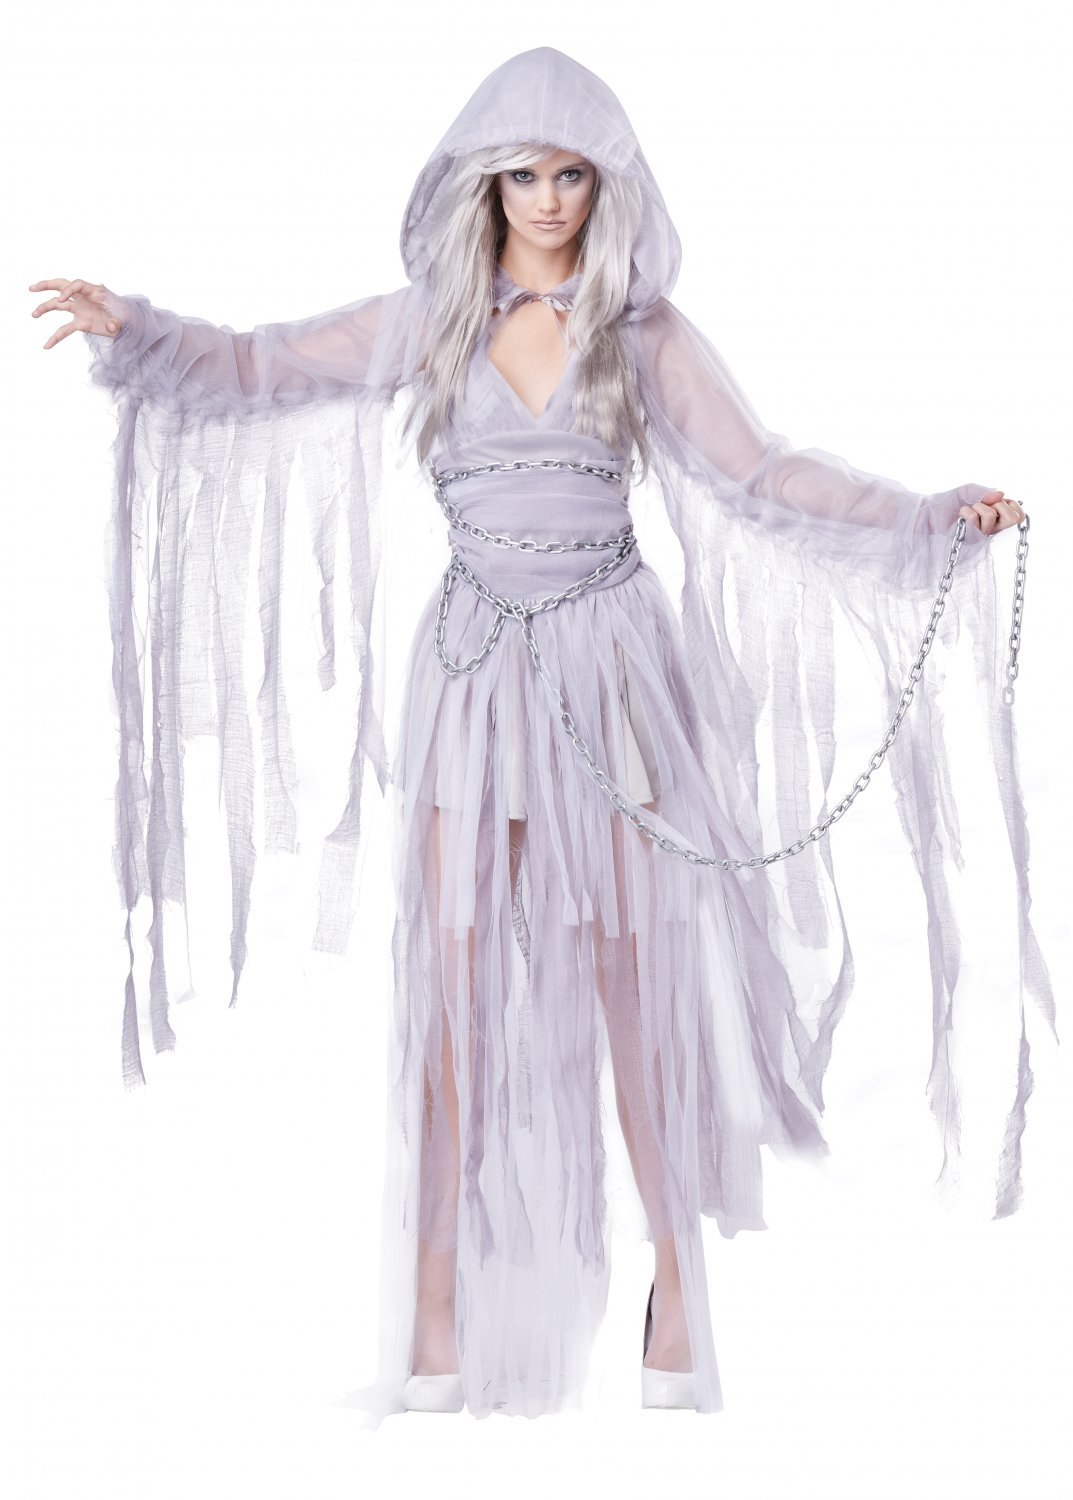 Ghost of Christmas Haunting Beauty Adult Costume Size: X-Small #01327